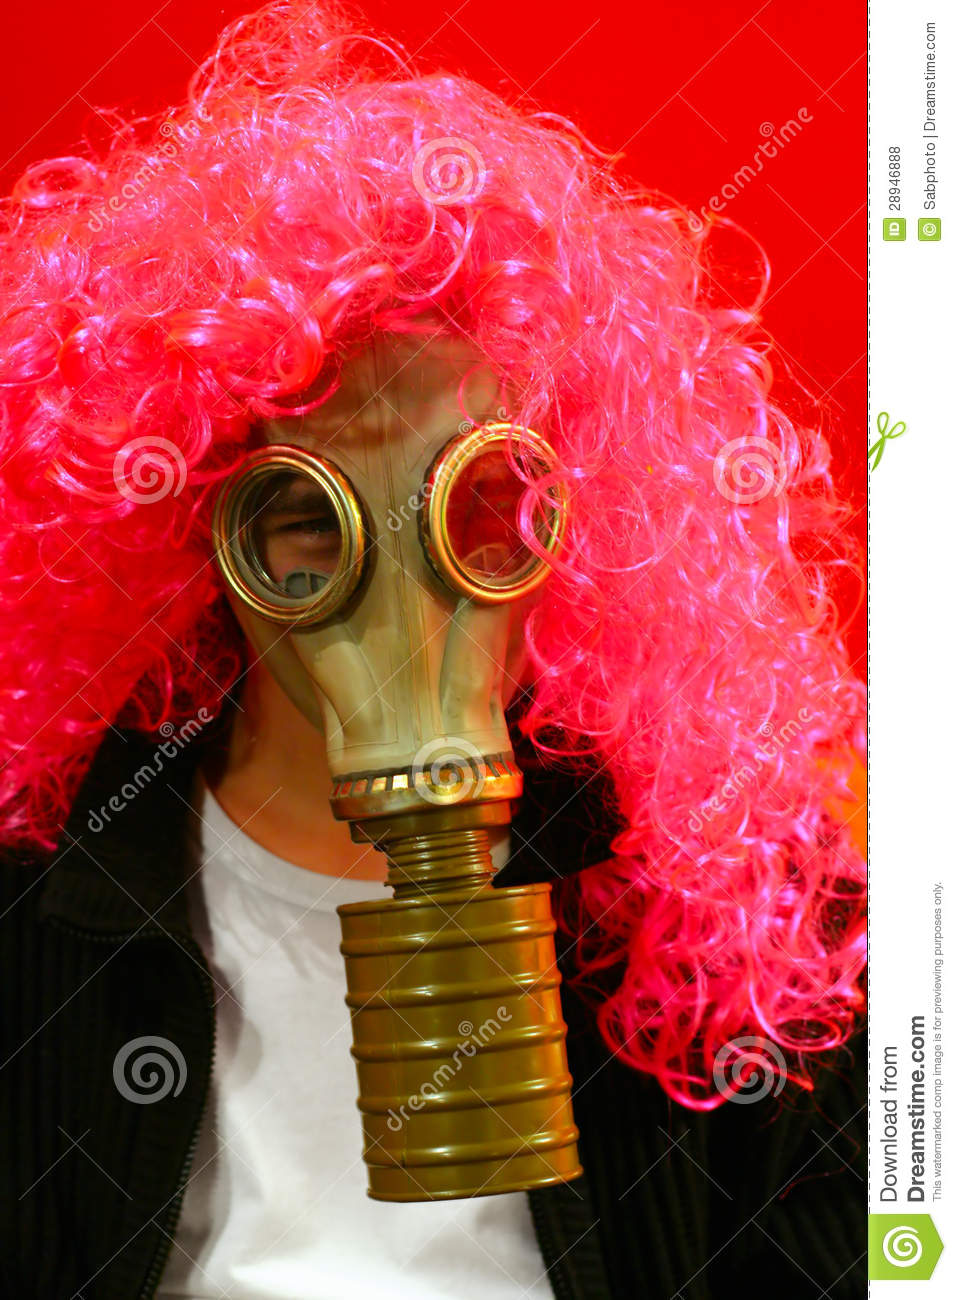 funny person in gas mask stock photo image of shirt 28946888